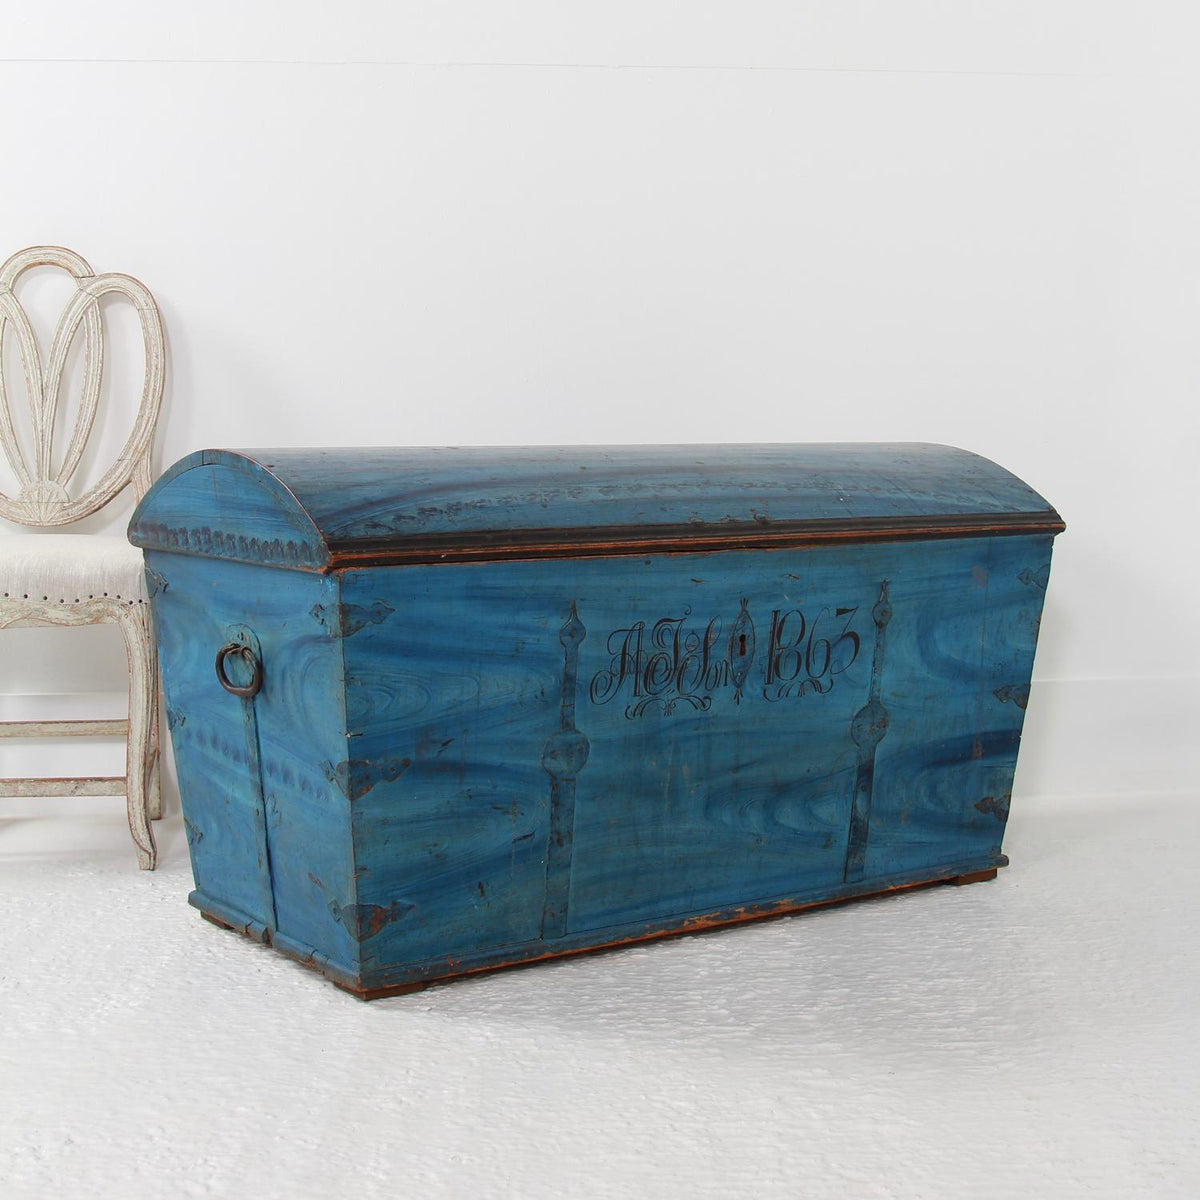 Swedish Original Painted Dome-Top Wedding Trunk, Dated 1863